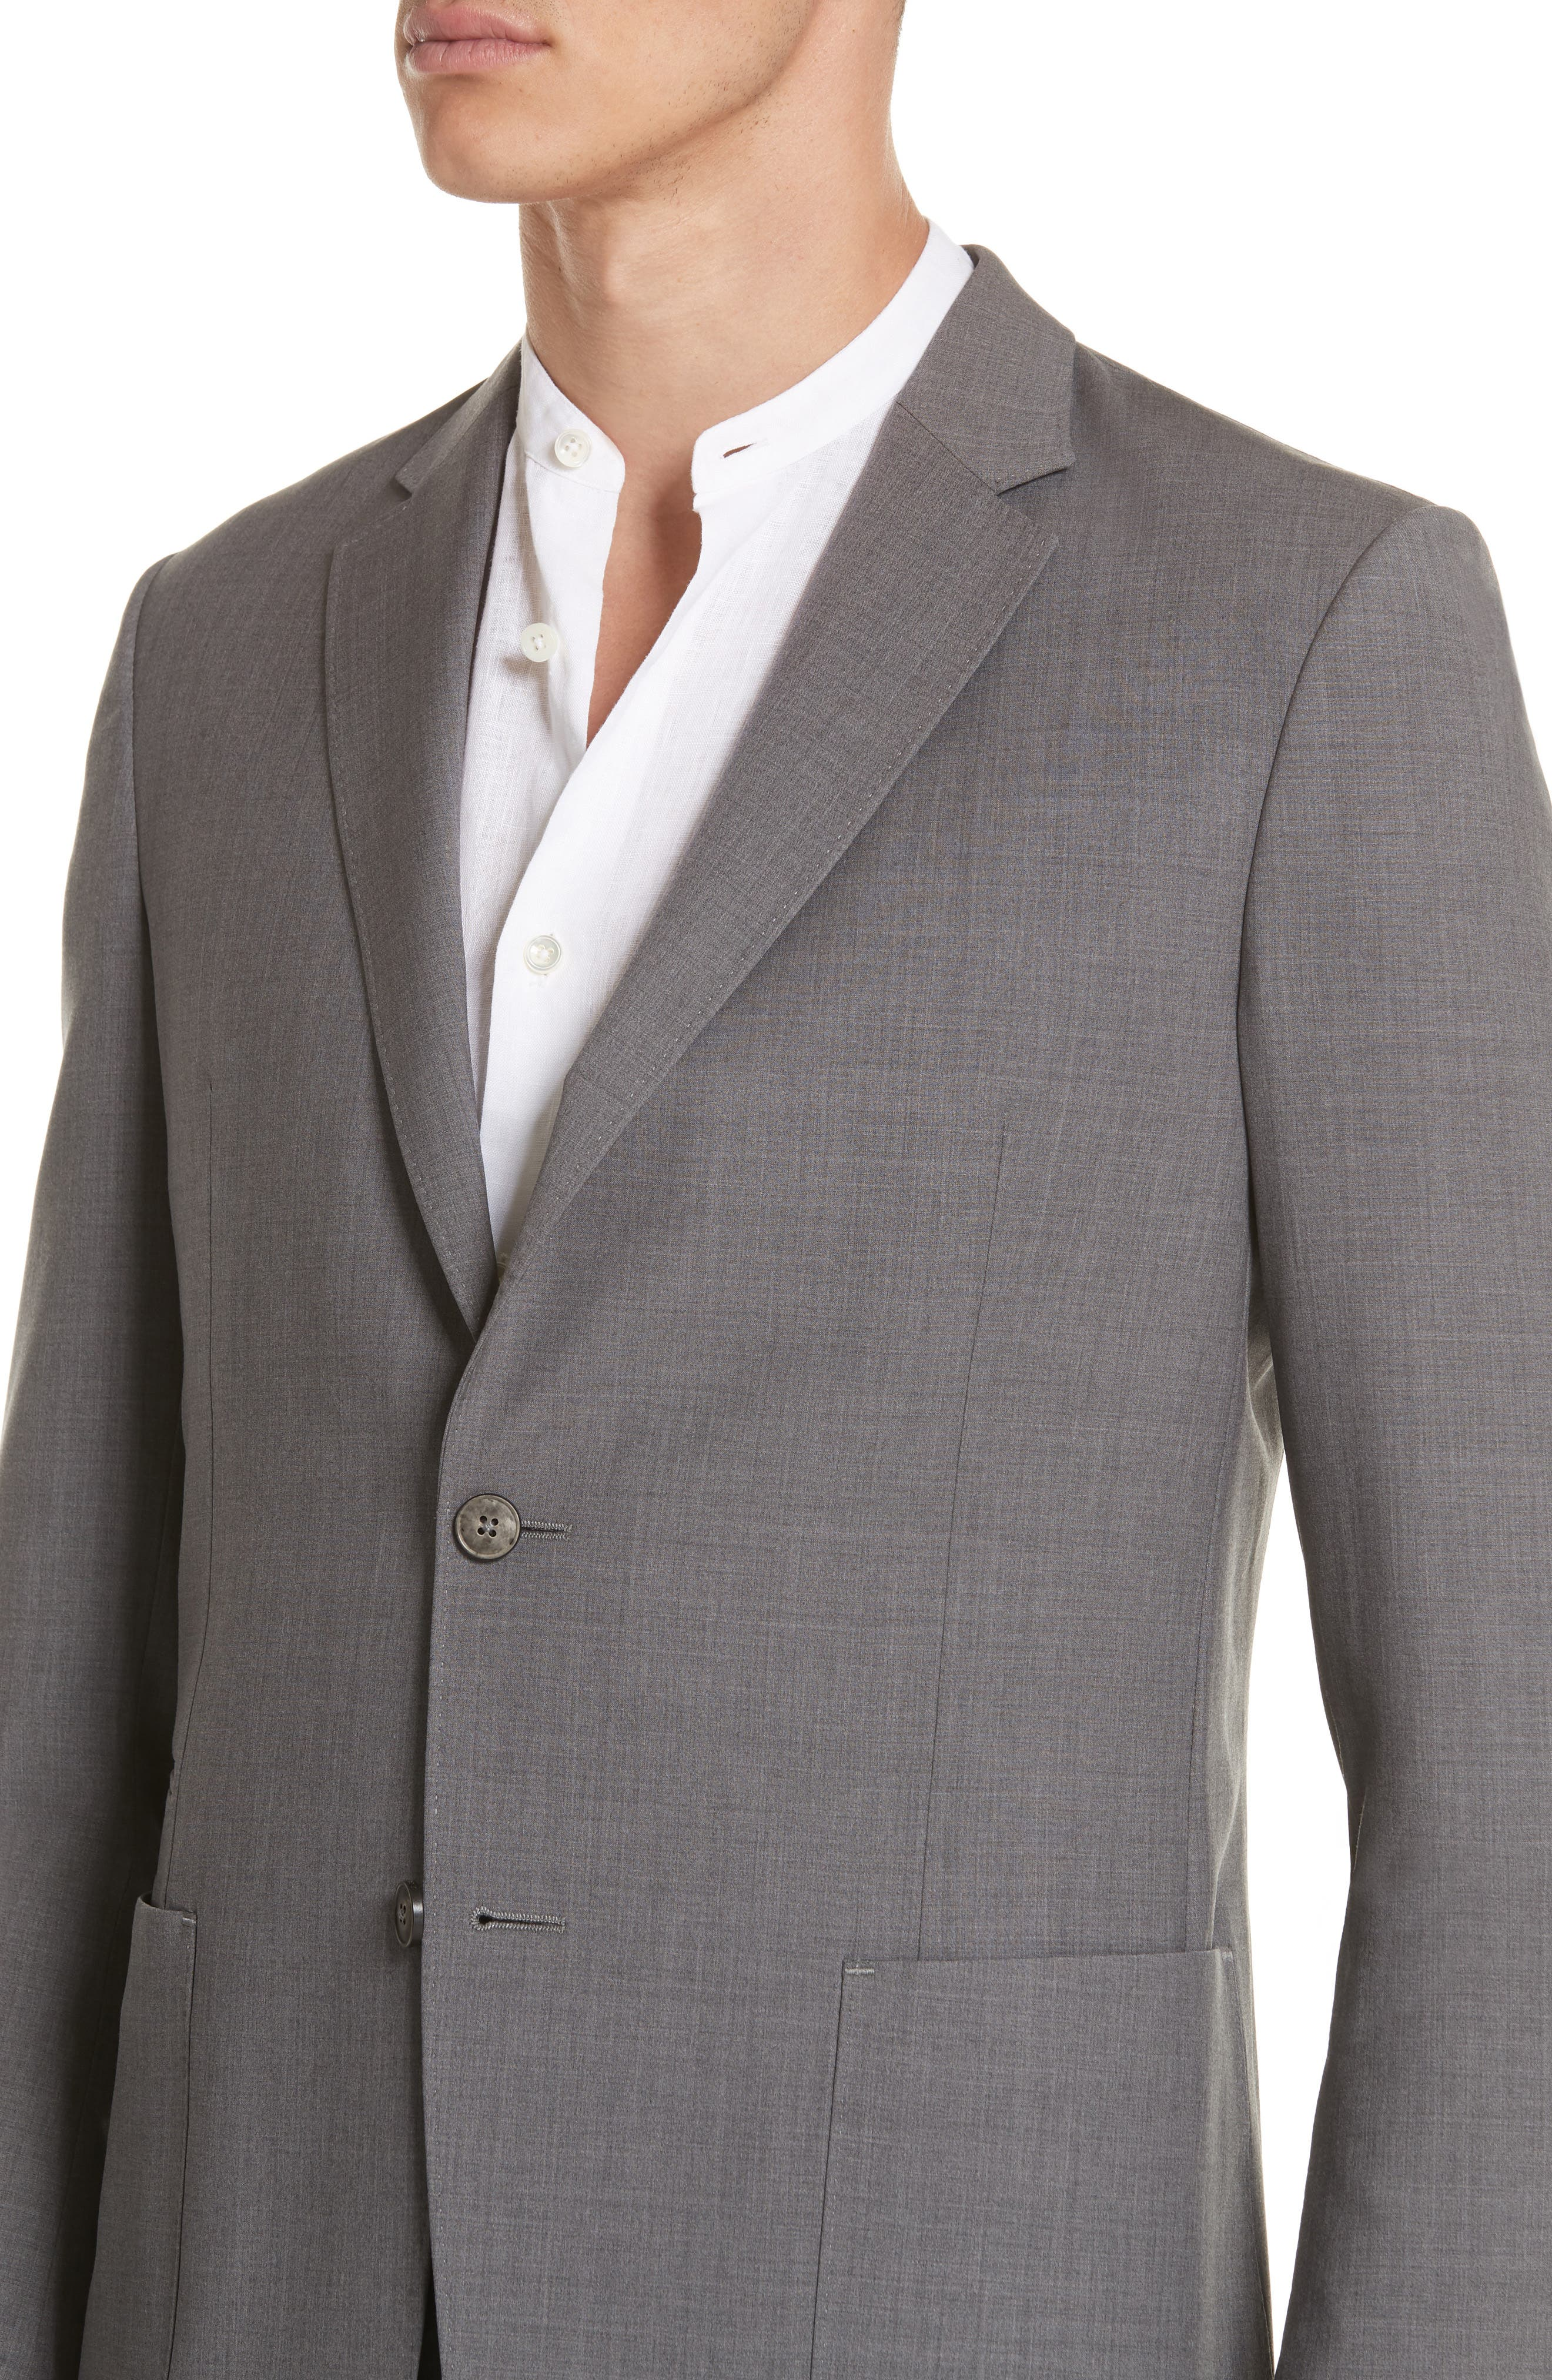 TECHMERINO<sup>™</sup> Wash & Go Trim Fit Solid Wool Suit,                             Alternate thumbnail 4, color,                             Solid Grey